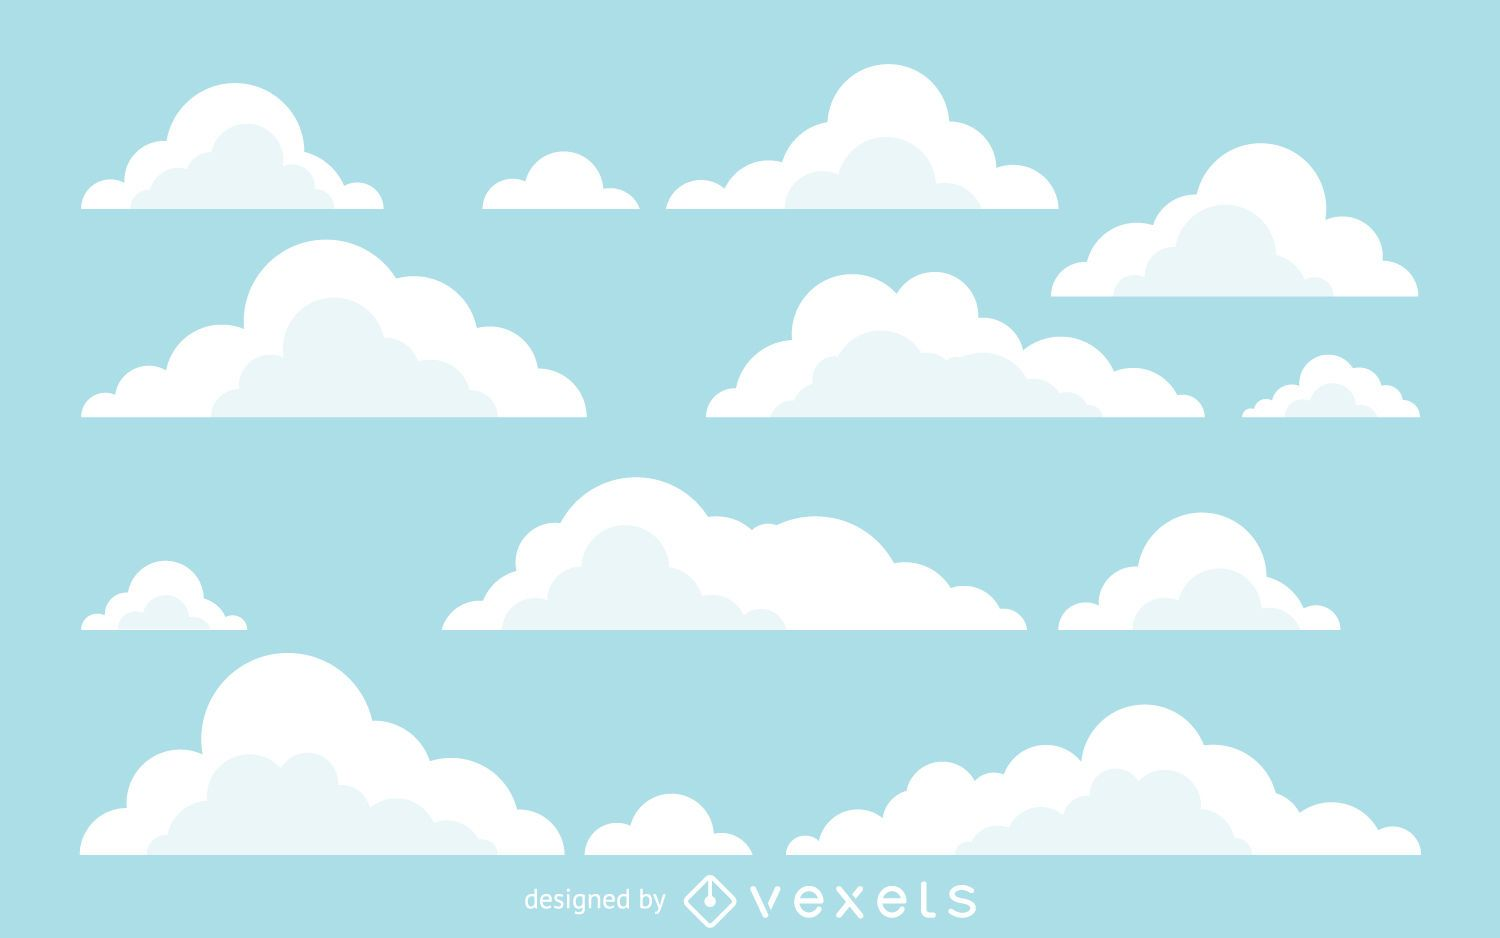 Flat Cloud Illustrations Background Vector Download